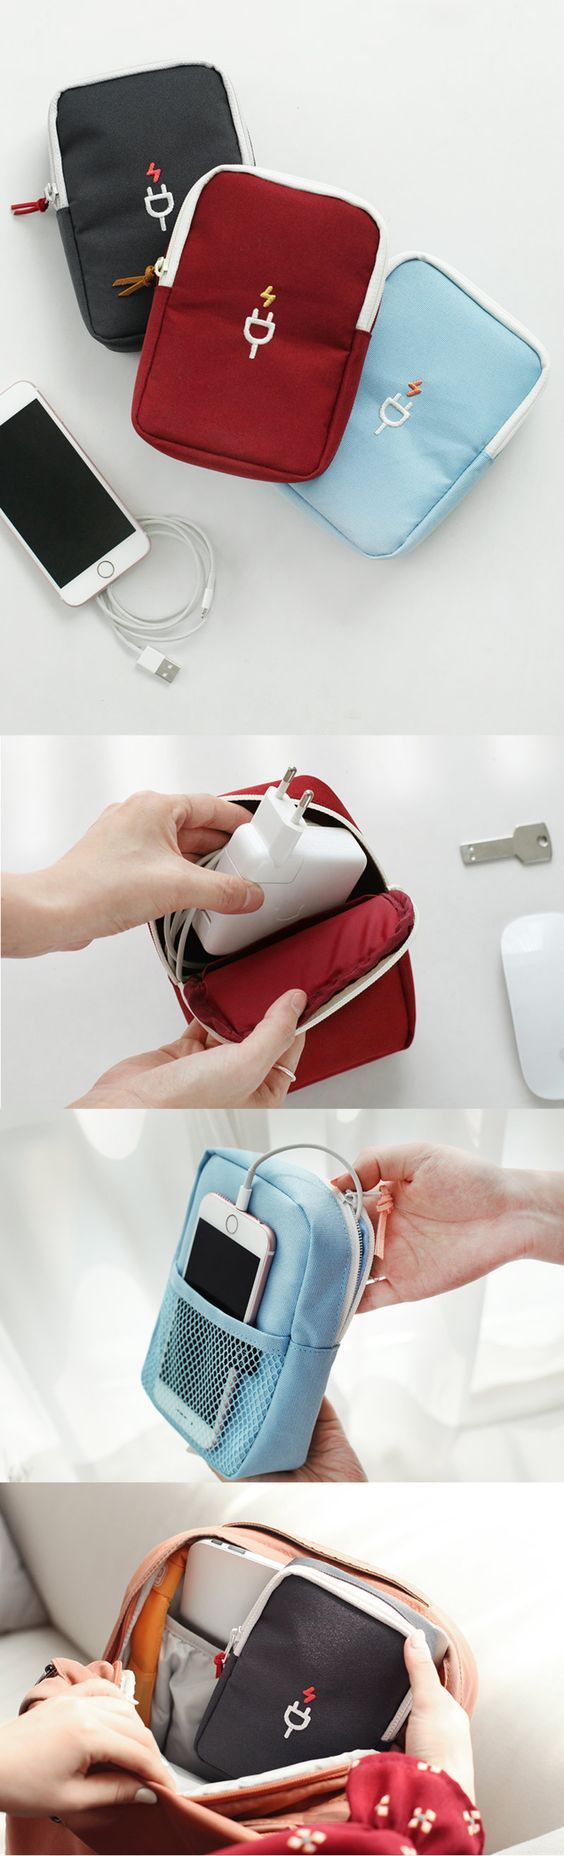 Ready? Charge! Our new Large Charger Pouch is the ideal way to protect, organize, & carry your electronics! This cute pouch is padded & large enough to carry even a bulky laptop charger! It has an inner pocket to hold your USB drive, camera, or a slim mouse. You can store small items like your phone or earbuds in the mesh back pocket. It fits up to an iPhone 6 Plus! What are you waiting for? Check out all 3 styles of this portable pouch & take it with you for travel, school, work, or daily…